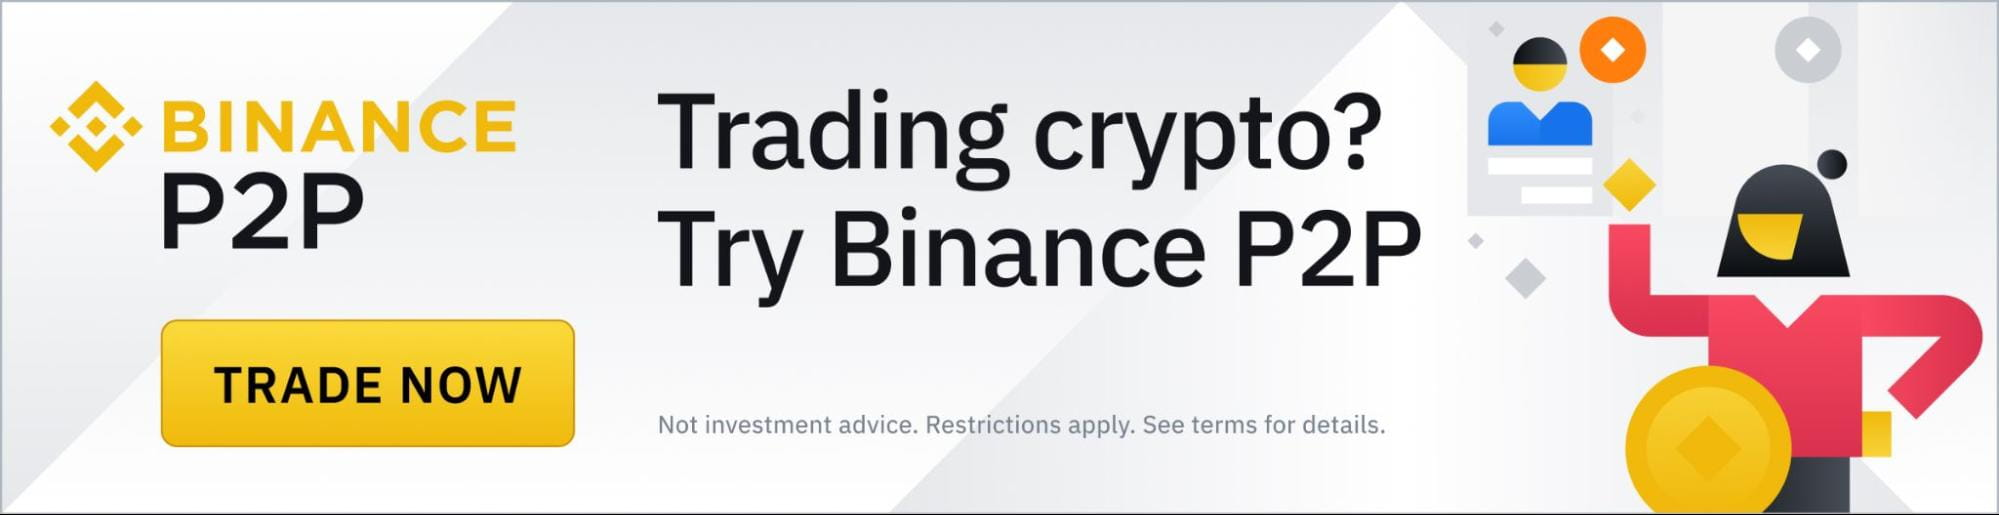 Tips for Using Binance P2P to Avoid Third-Party TransfersCryptocurrency Trading Signals, Strategies & Templates | DexStrats